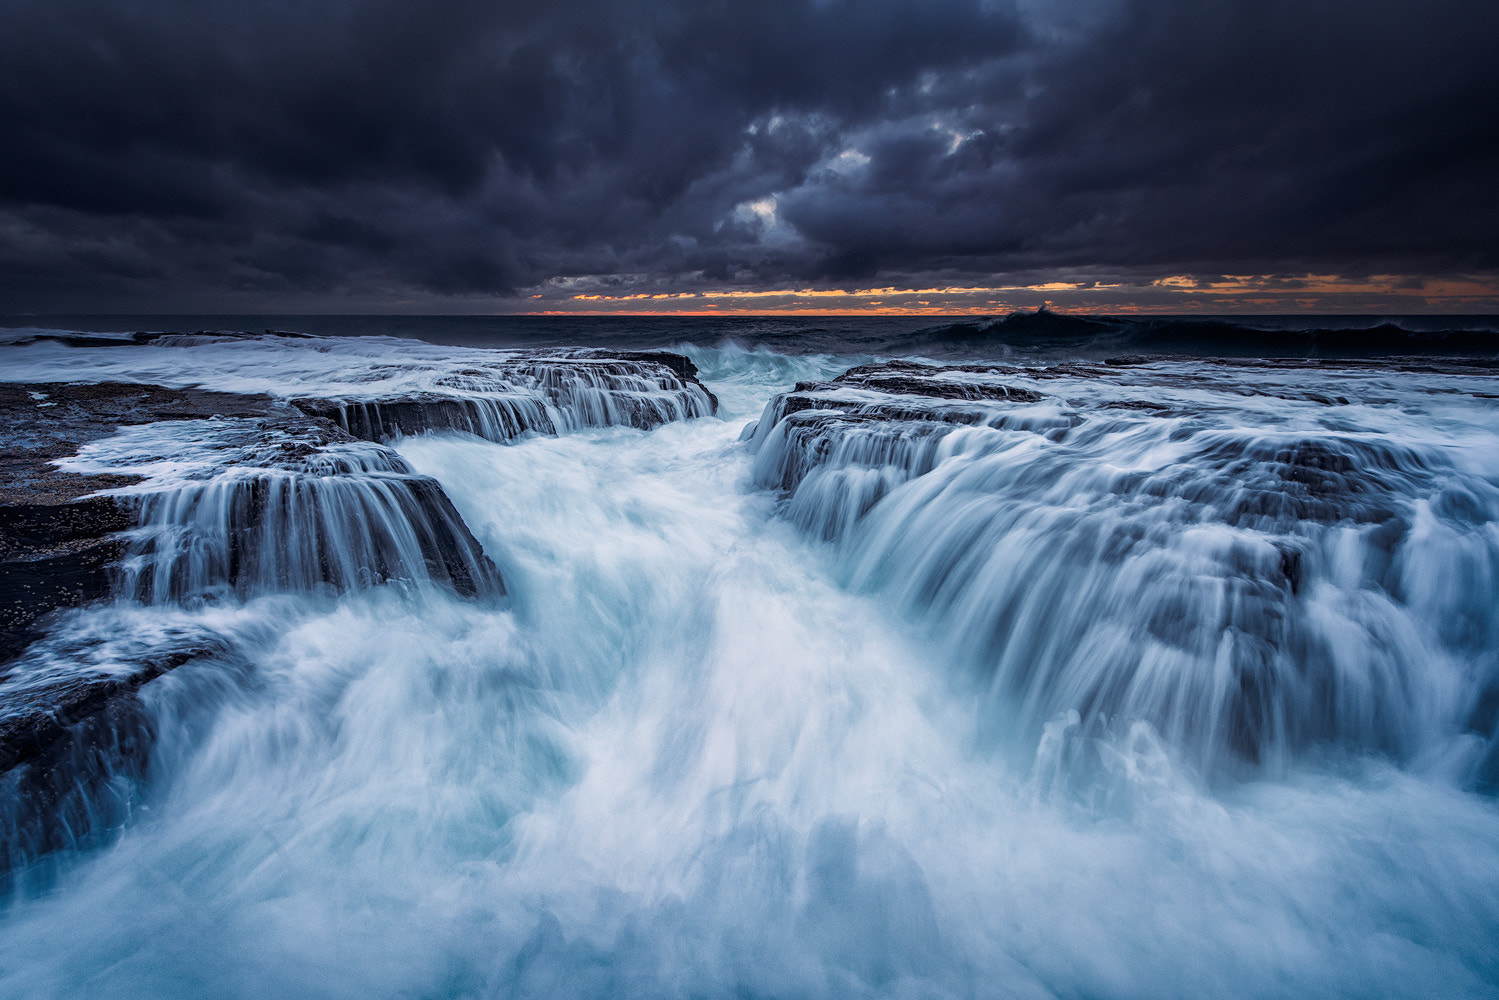 Photograph Angry Ocean by Joshua Zhang on 500px